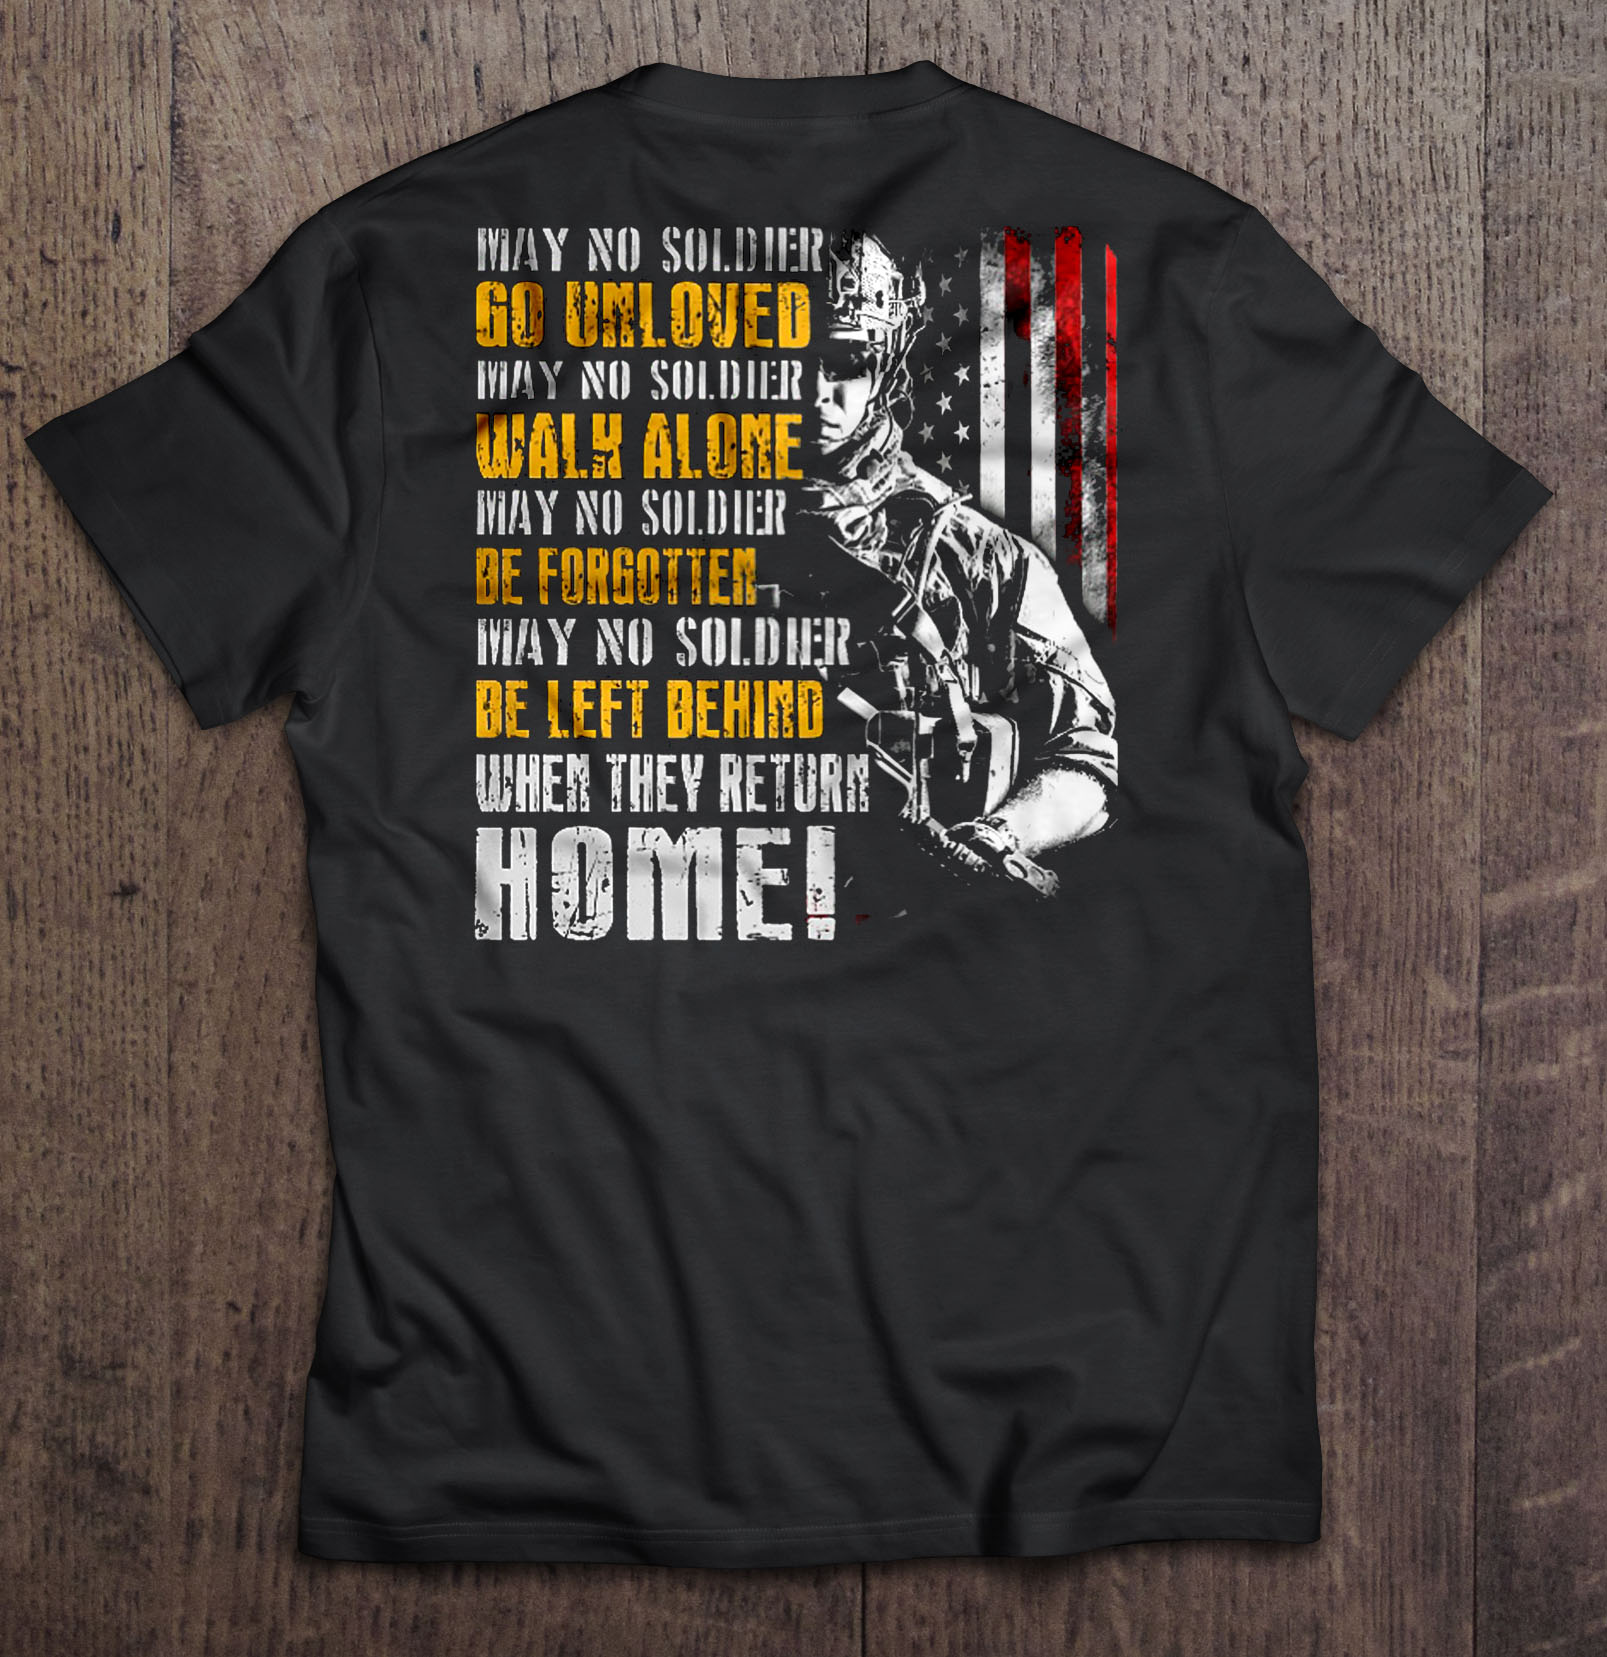 May No Soldier Go Unloved Walk Alone Be Forgotten Be Left Behind When They Return Home Tshirts image